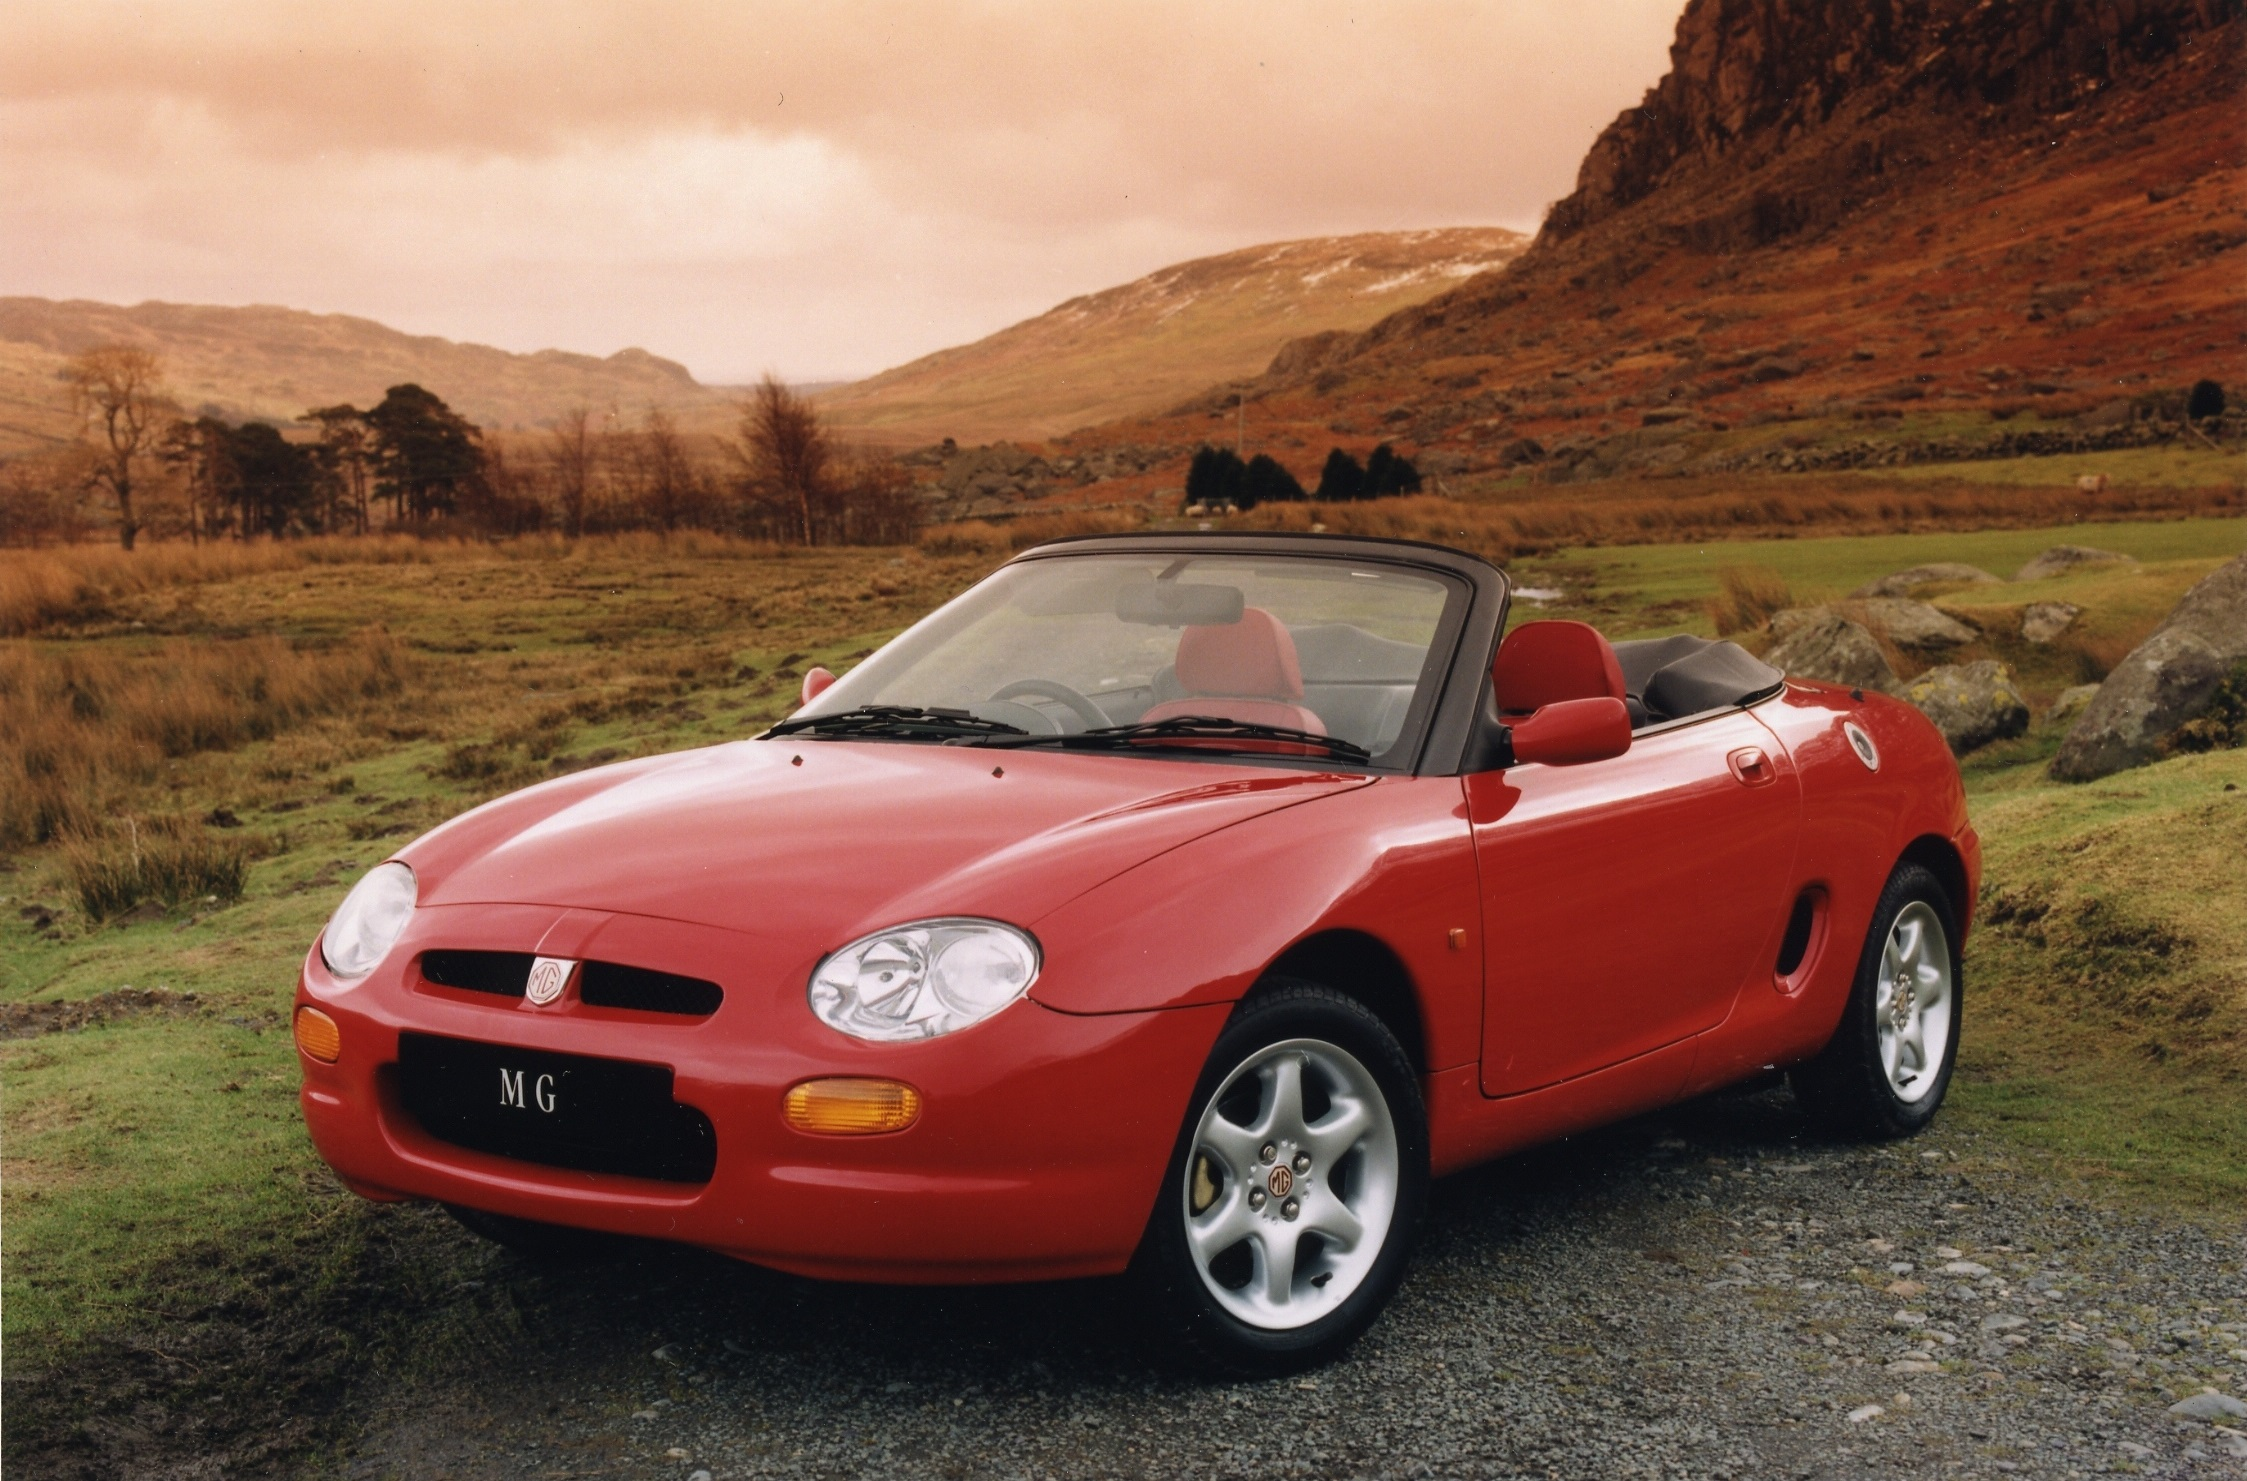 MG's '90s sports car used some fairly major bits of Metro DNA